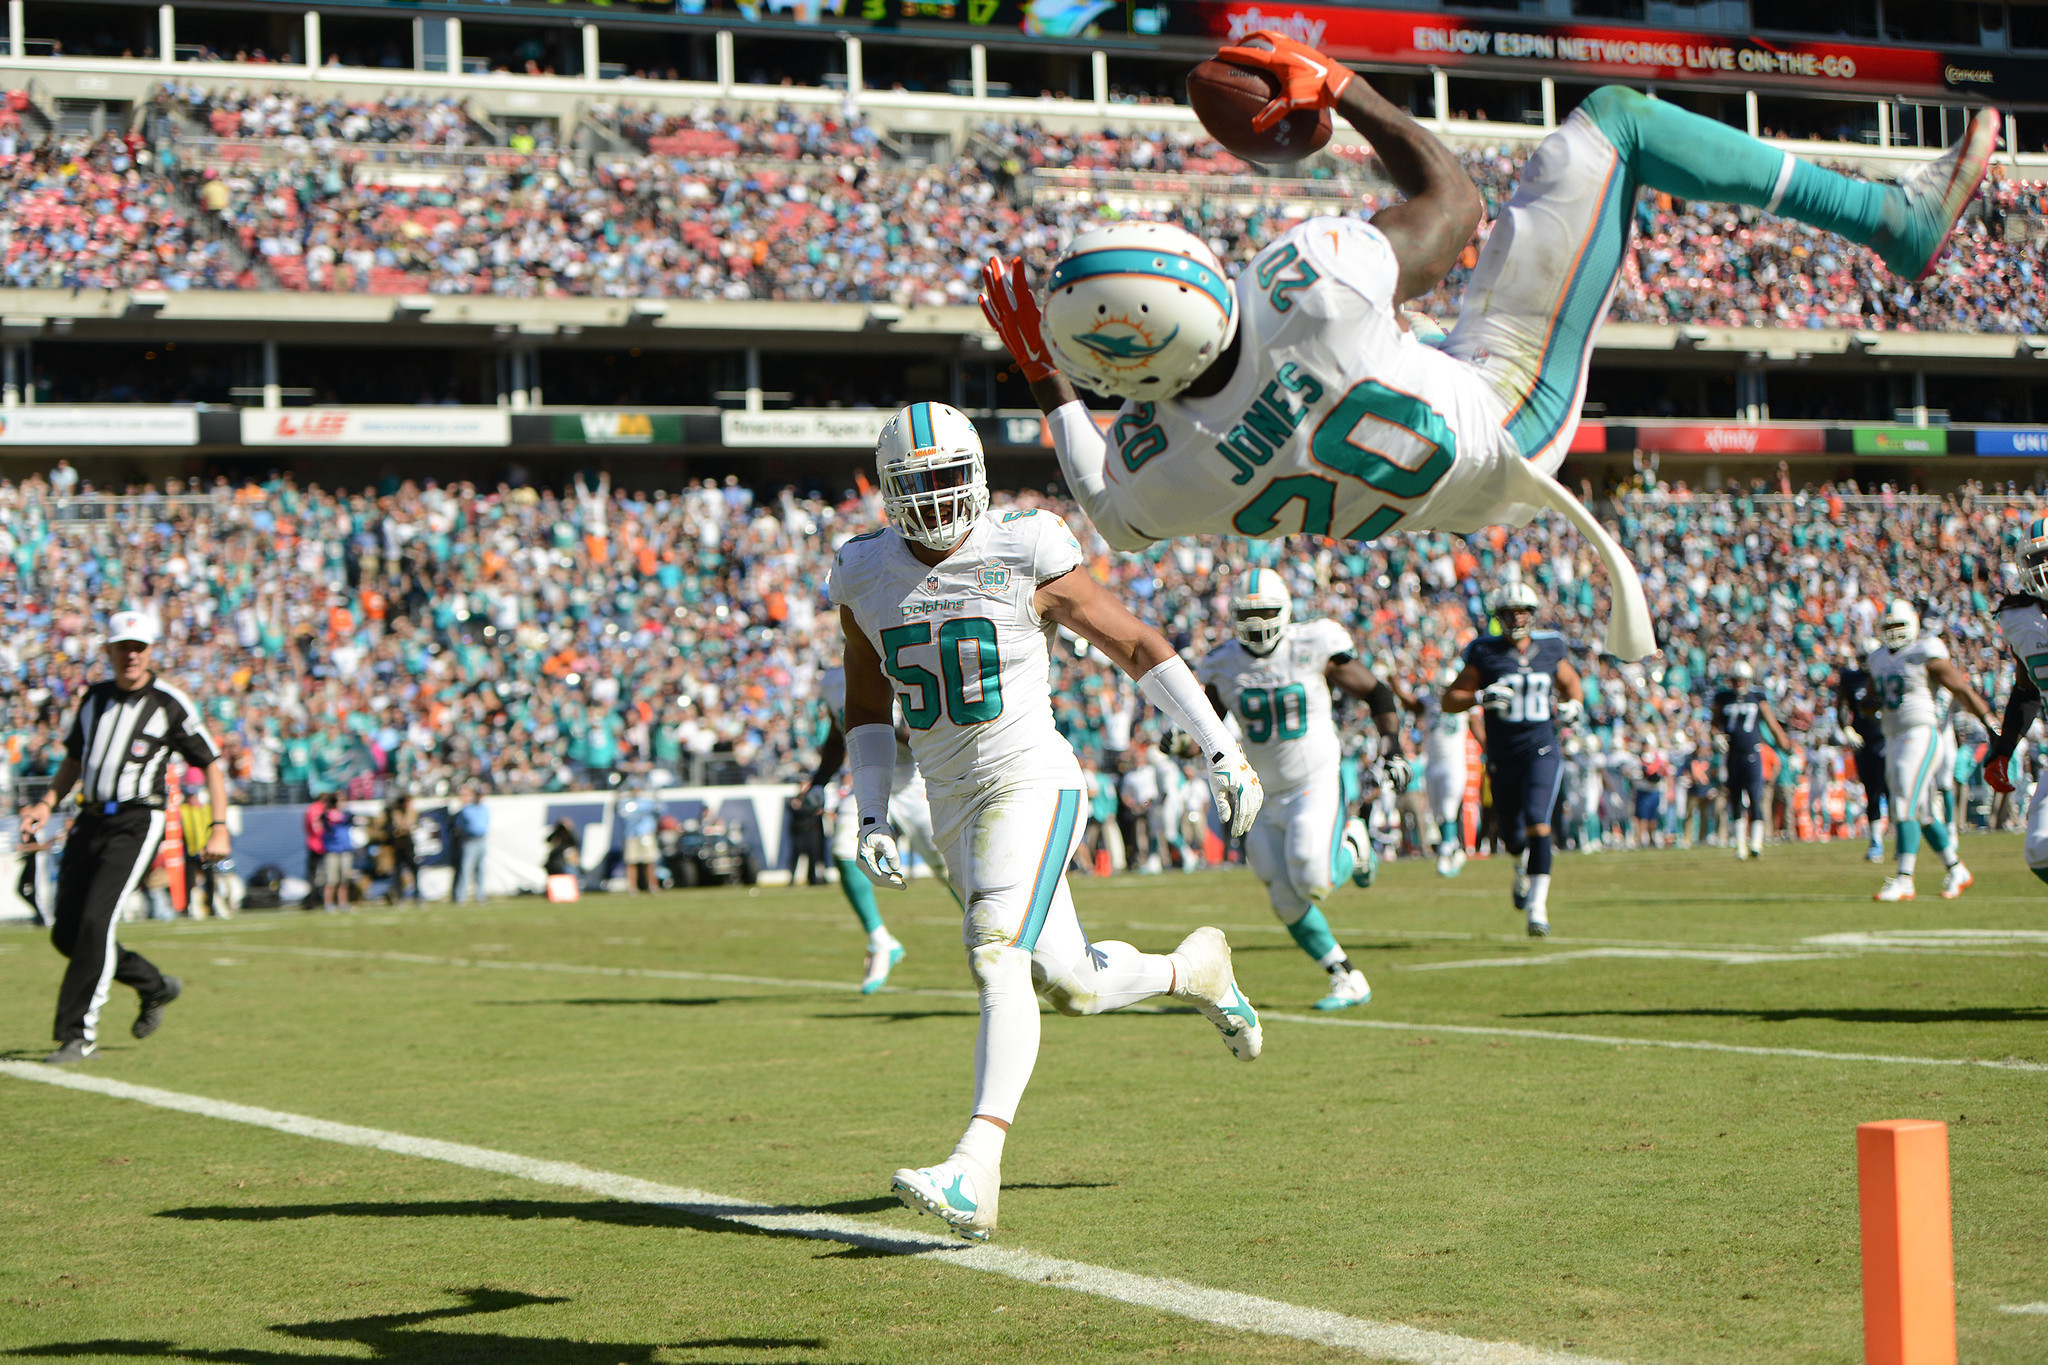 Dolphins sign safety Reshad Jones to 5 year deal Sun Sentinel